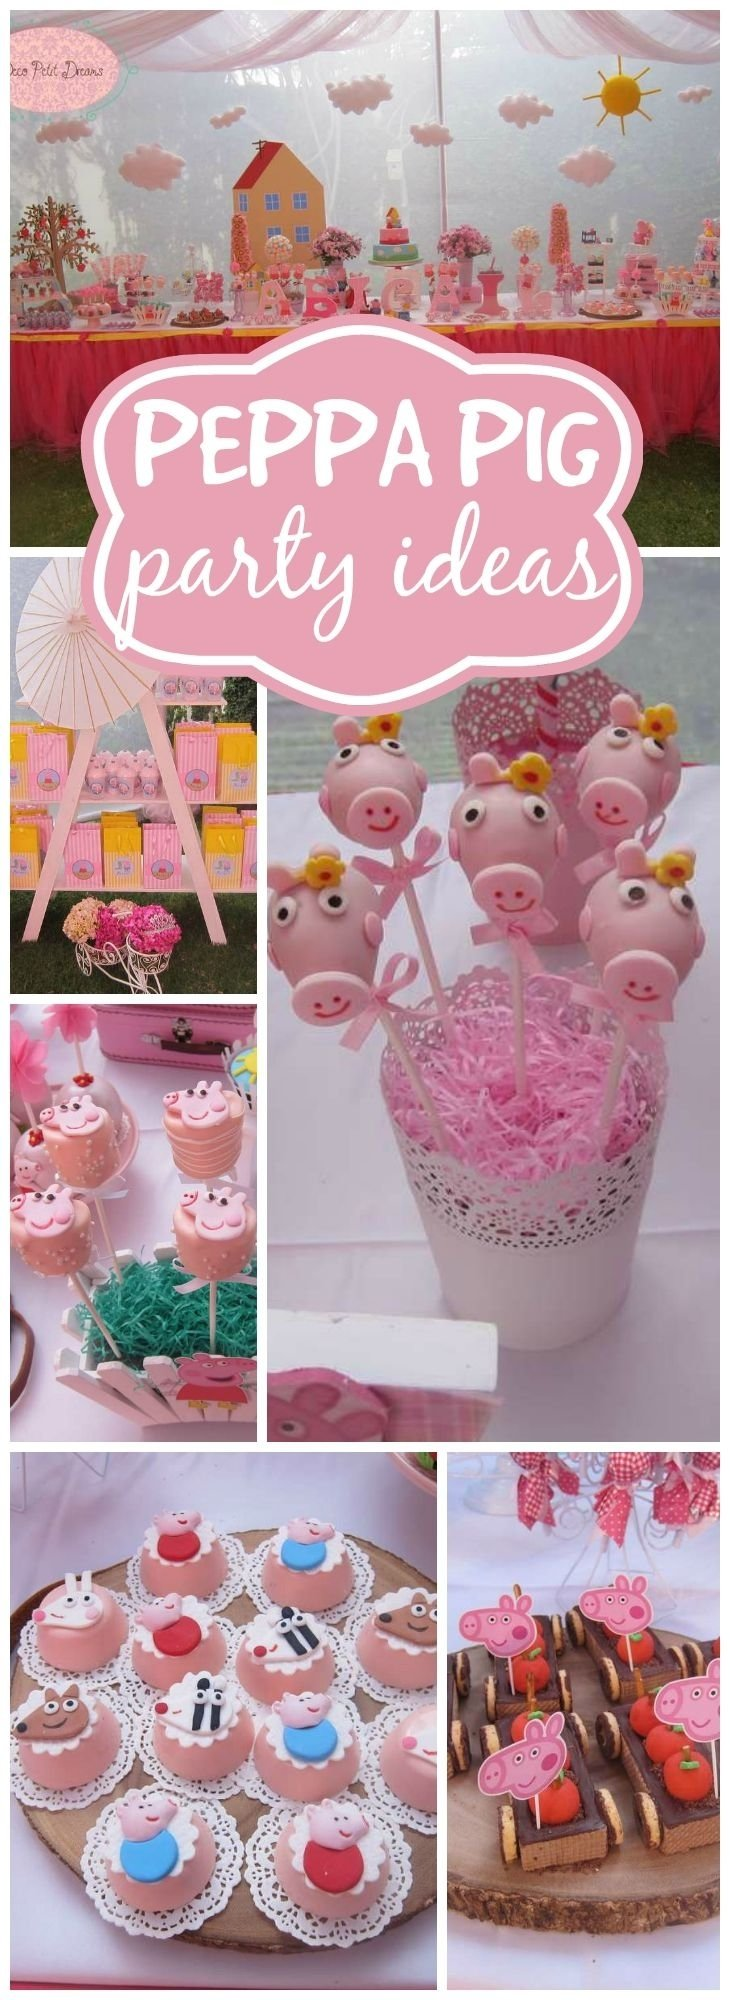 10 Great Birthday Party Ideas For Girls Age 6 293 best peppa pig party ideas images on pinterest anniversary 2020